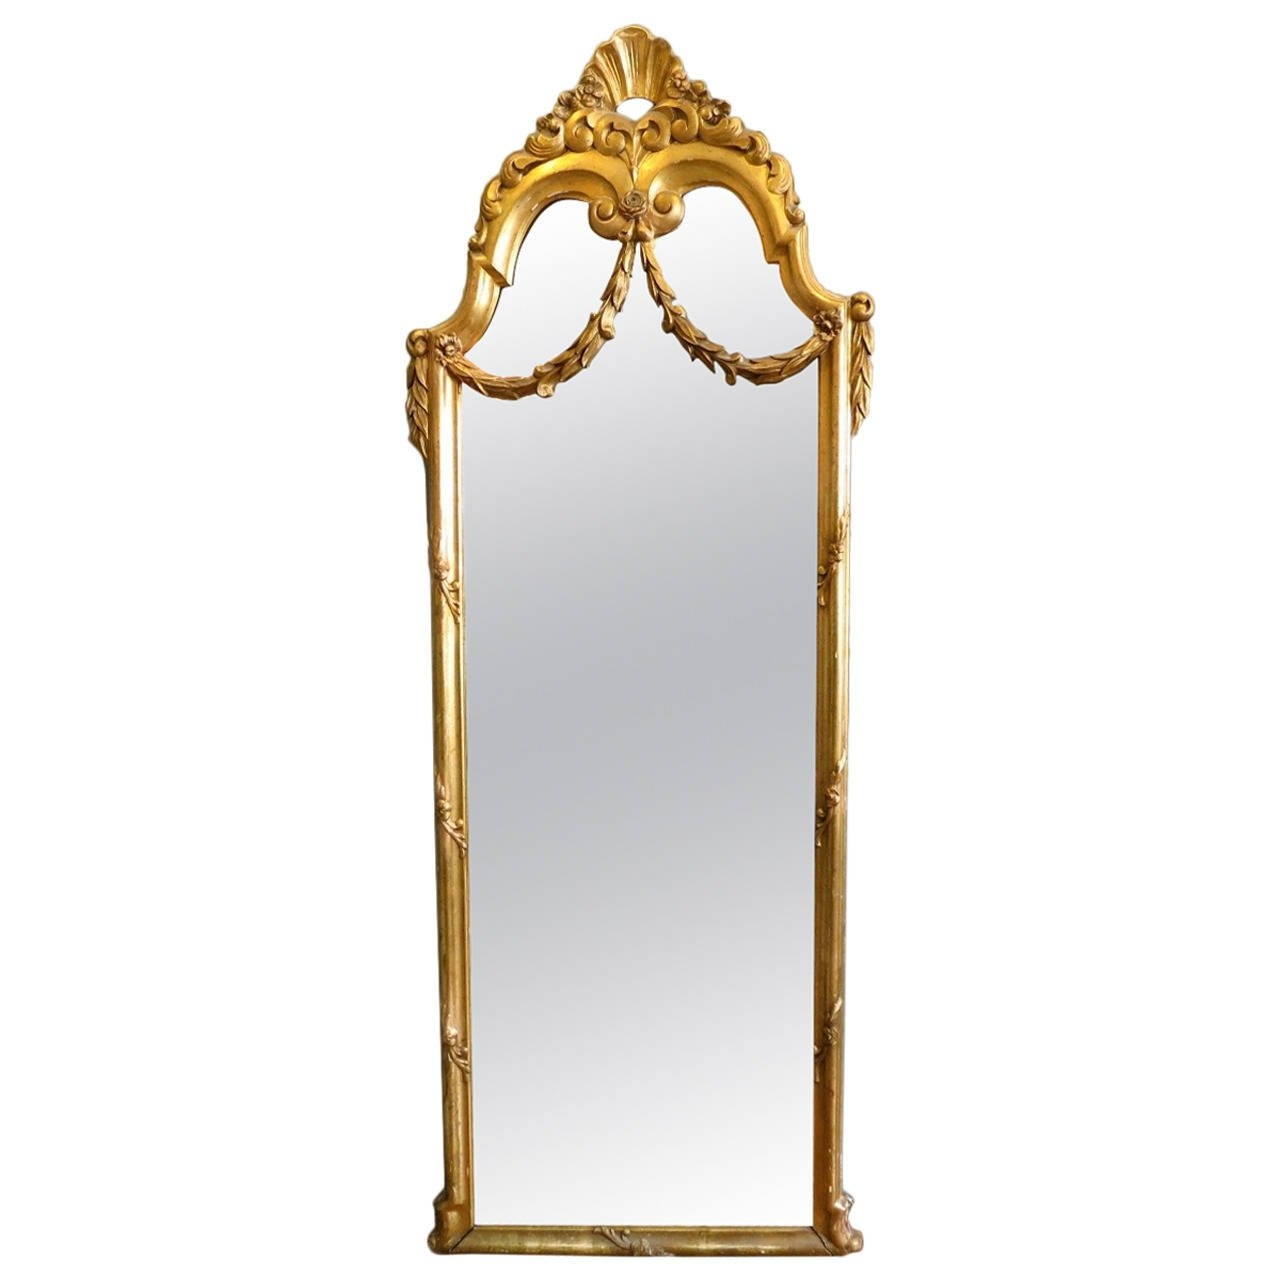 Antique French Gold Gilt Floor Standing Mirror At 1stdibs Intended For French Floor Standing Mirror (View 11 of 15)